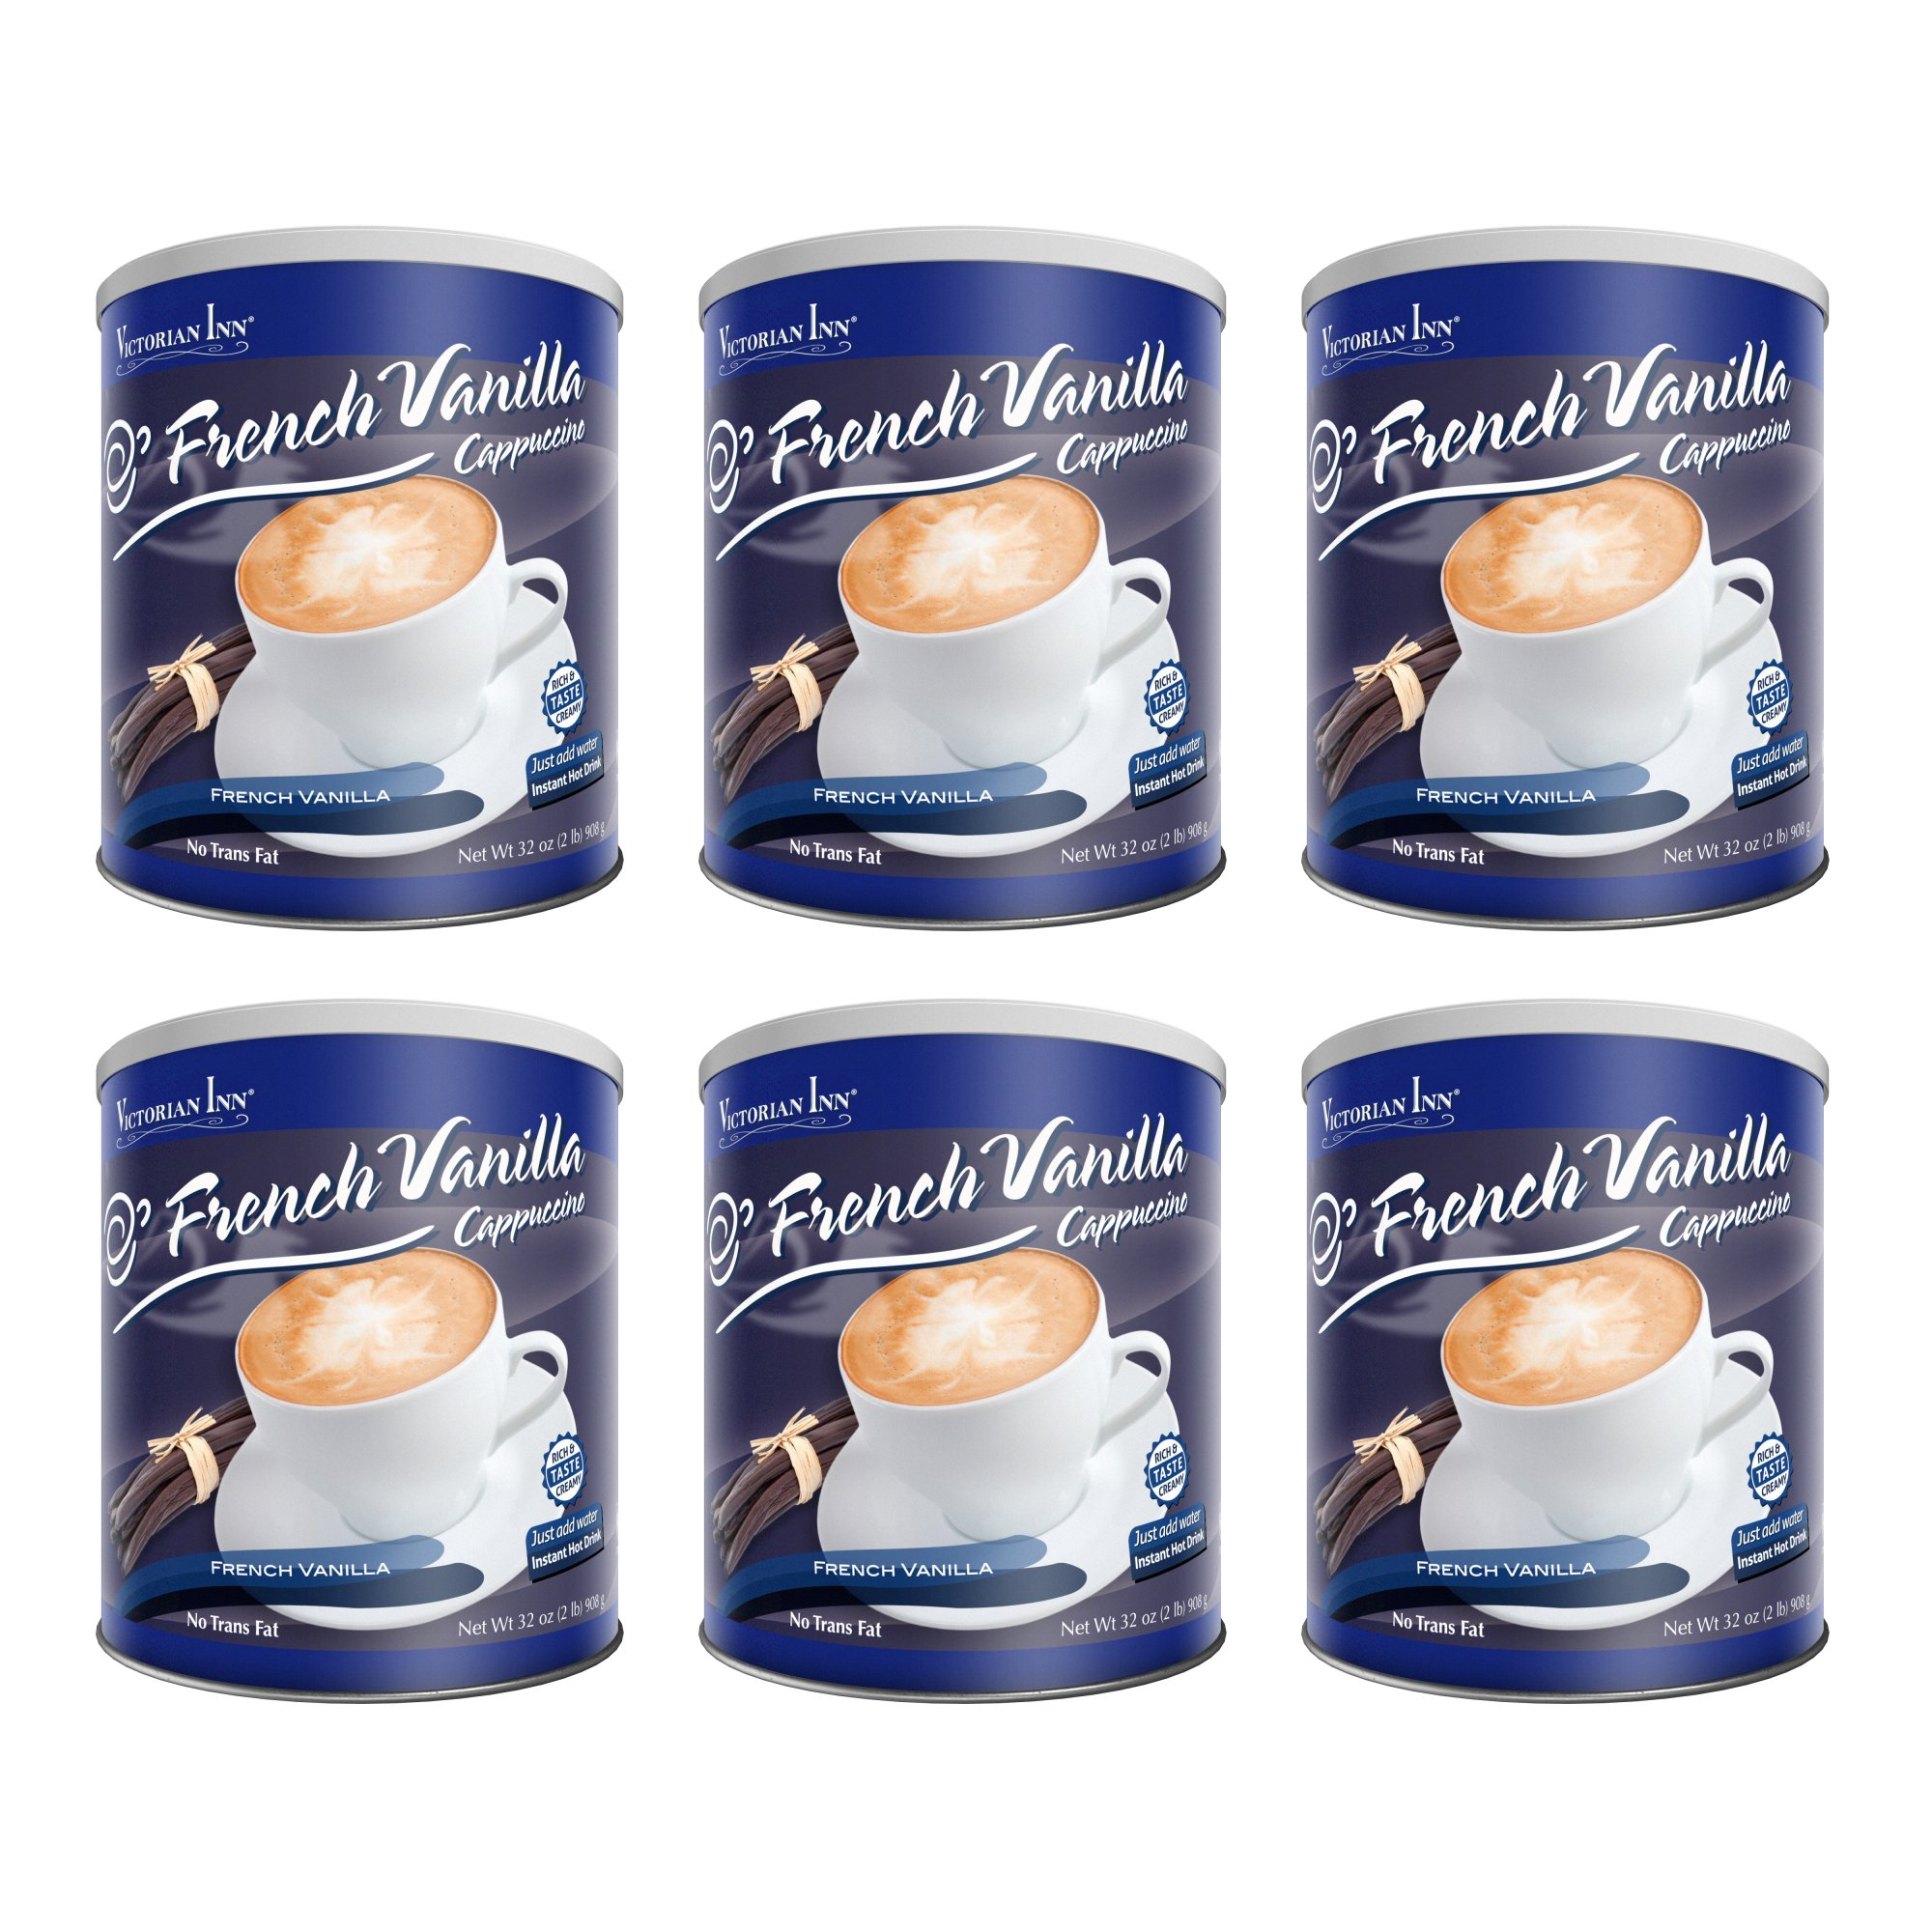 Victorian Inn Instant Cappuccino, French Vanilla, 32-Ounce Canisters (Pack of 6)